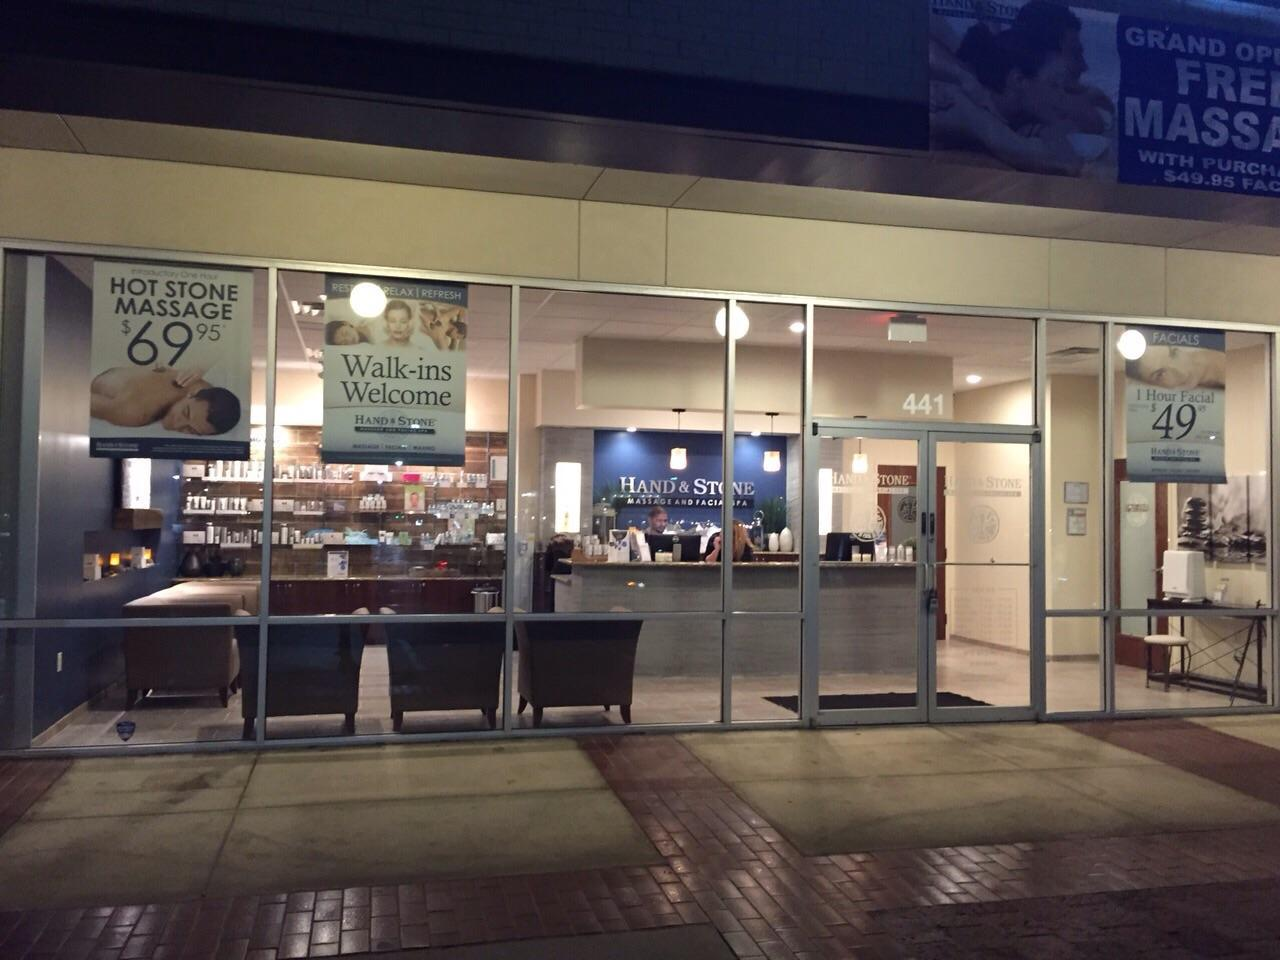 Granite Shops Near Me : Hand & Stone Massage and Facial Spa Coupons near me in Plano ...